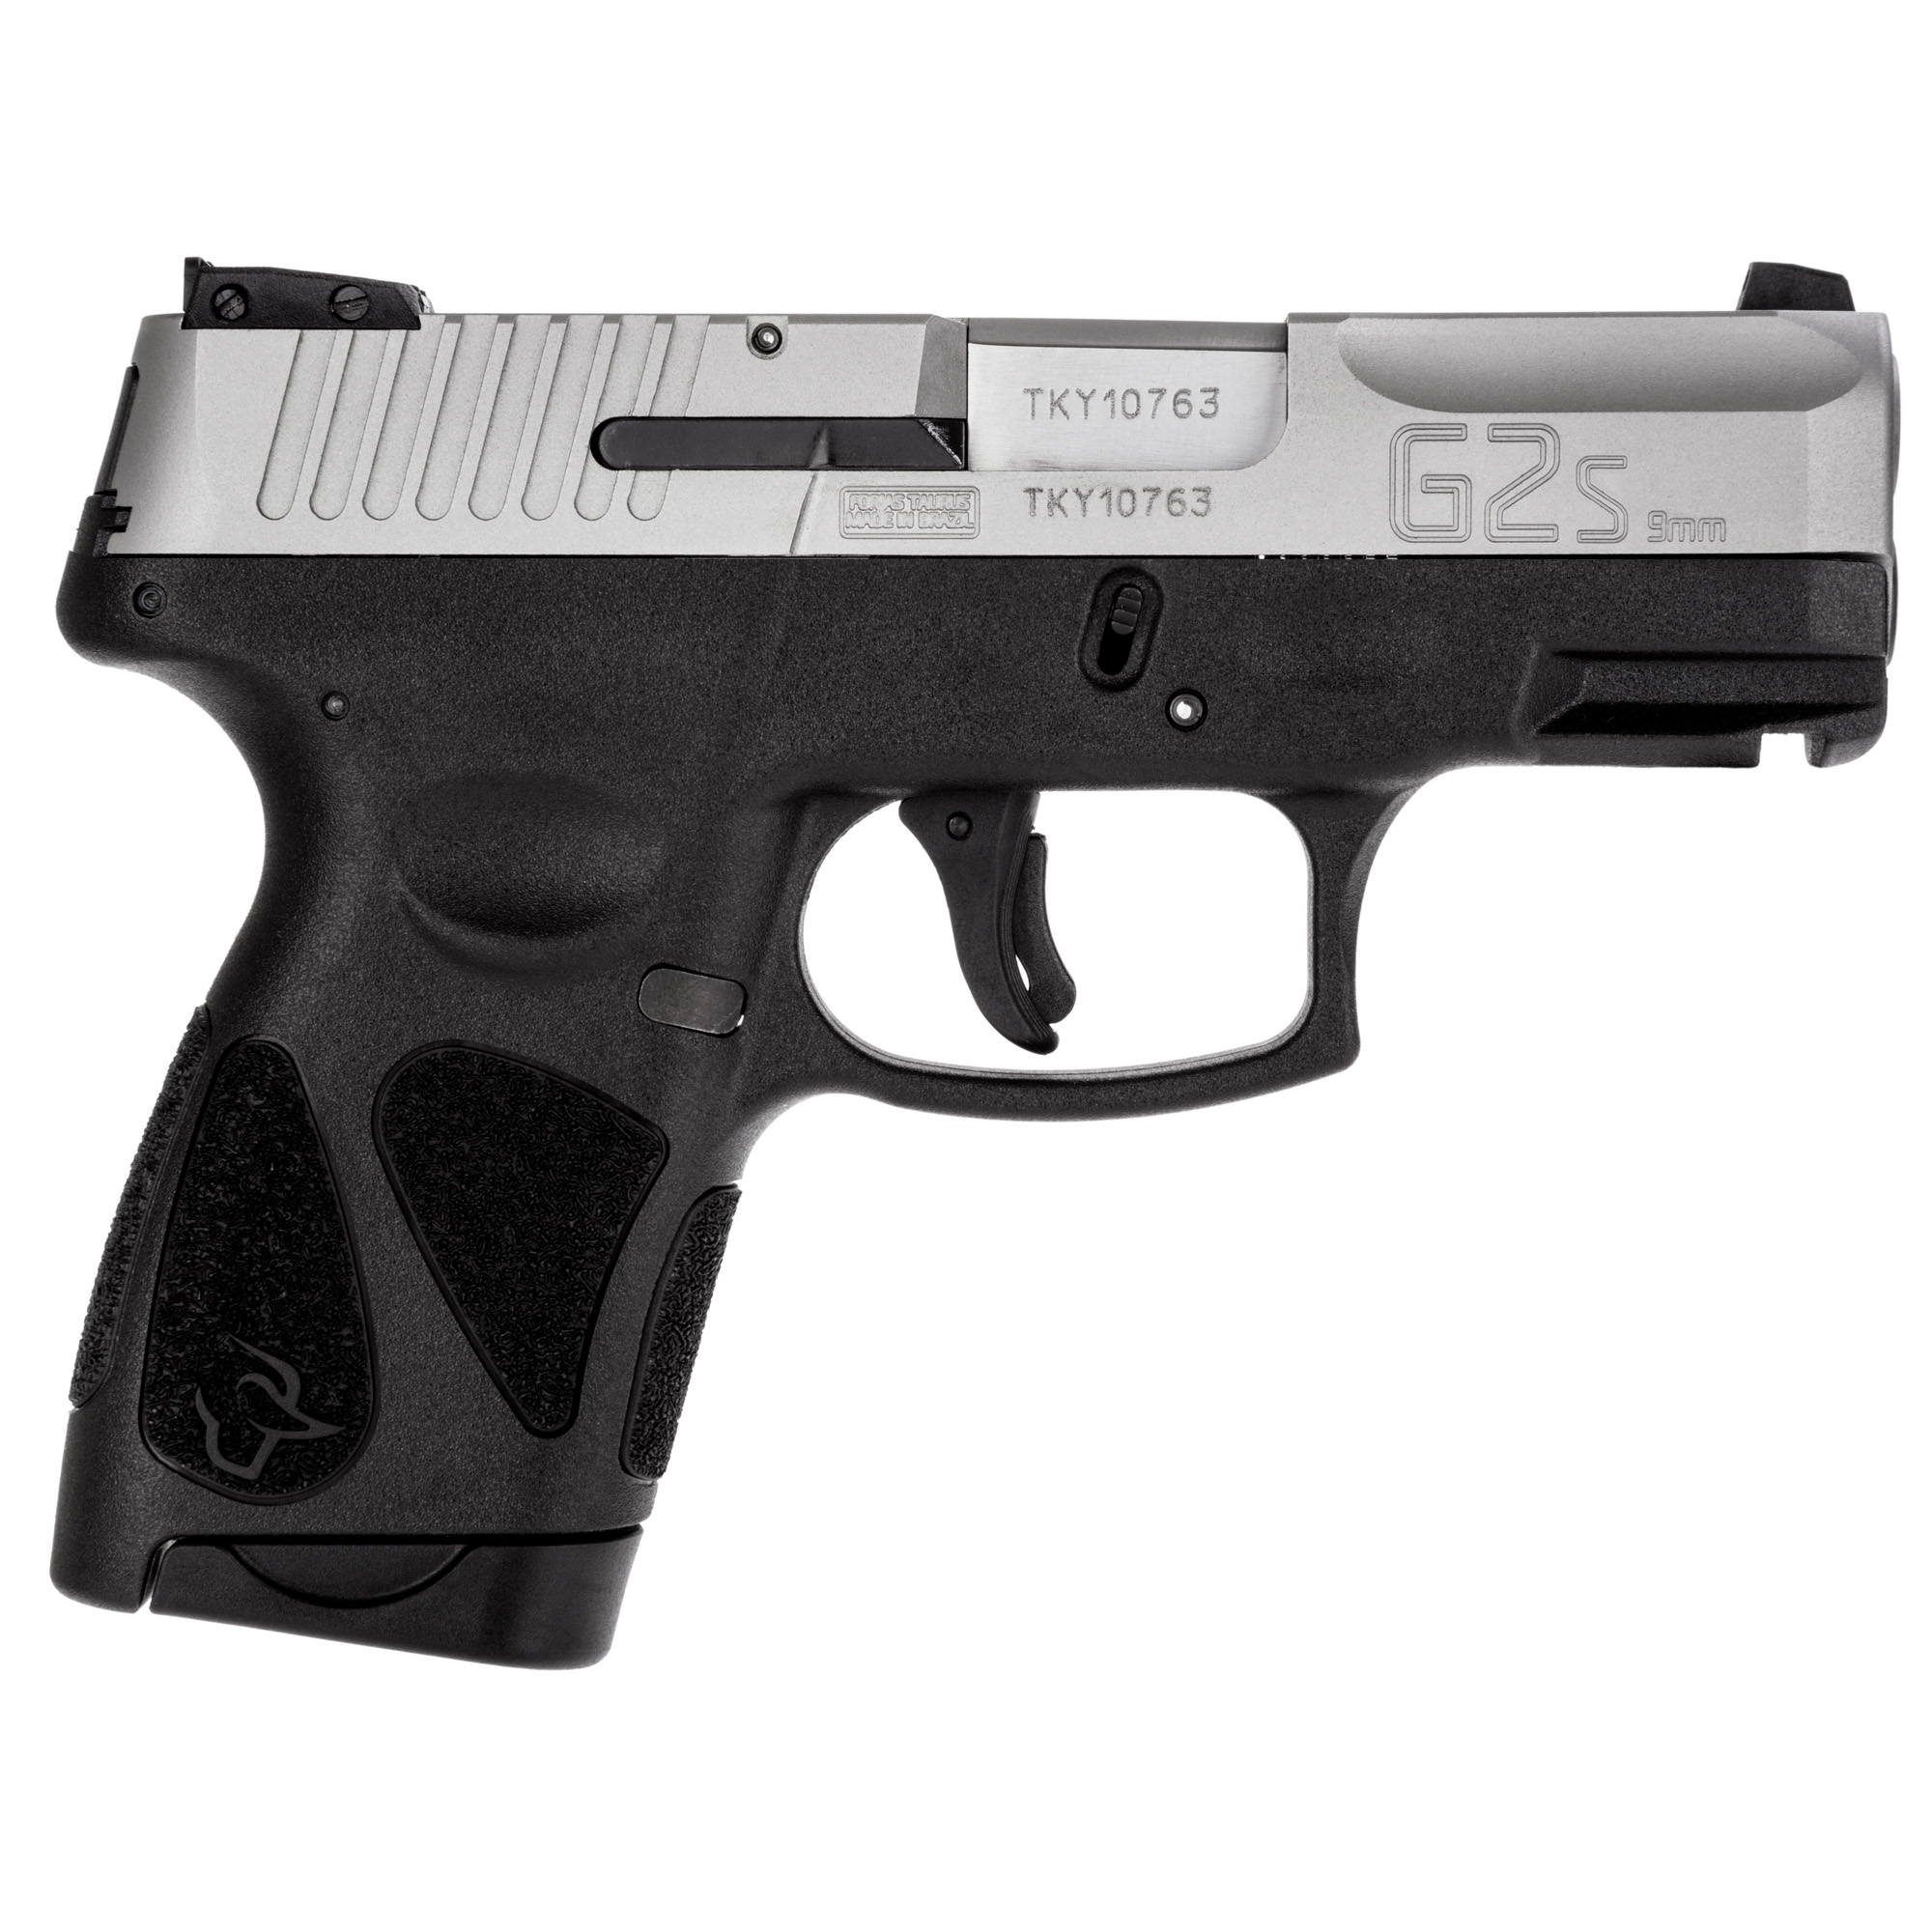 """Sharing much of the design and engineering advances with the equally new Taurus(R) G2C compact pistol"""" the G2S offers a more diminutive package that"""" unlike many subcompacts on the market"""" doesn't compromise comfort"""" effectiveness"""" or efficiency."""